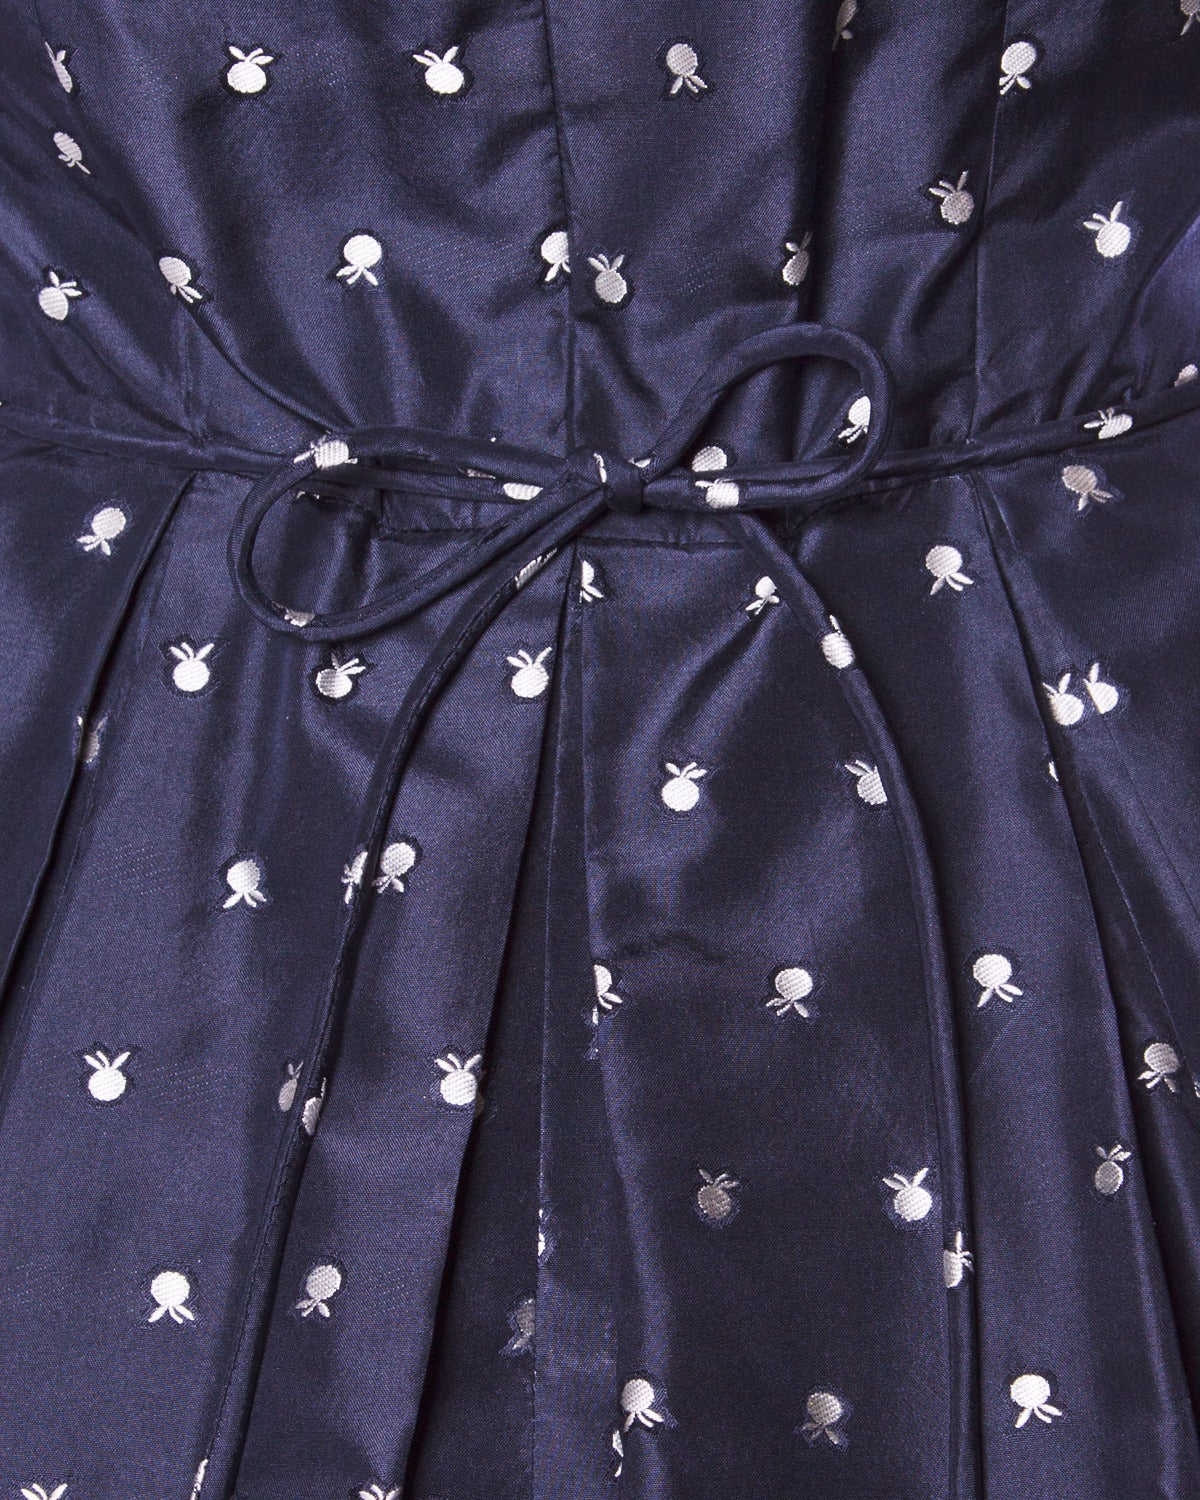 Ceil Chapman Vintage 1950s 50s Fruit Print Navy Silk Dress with Box Pleats 6